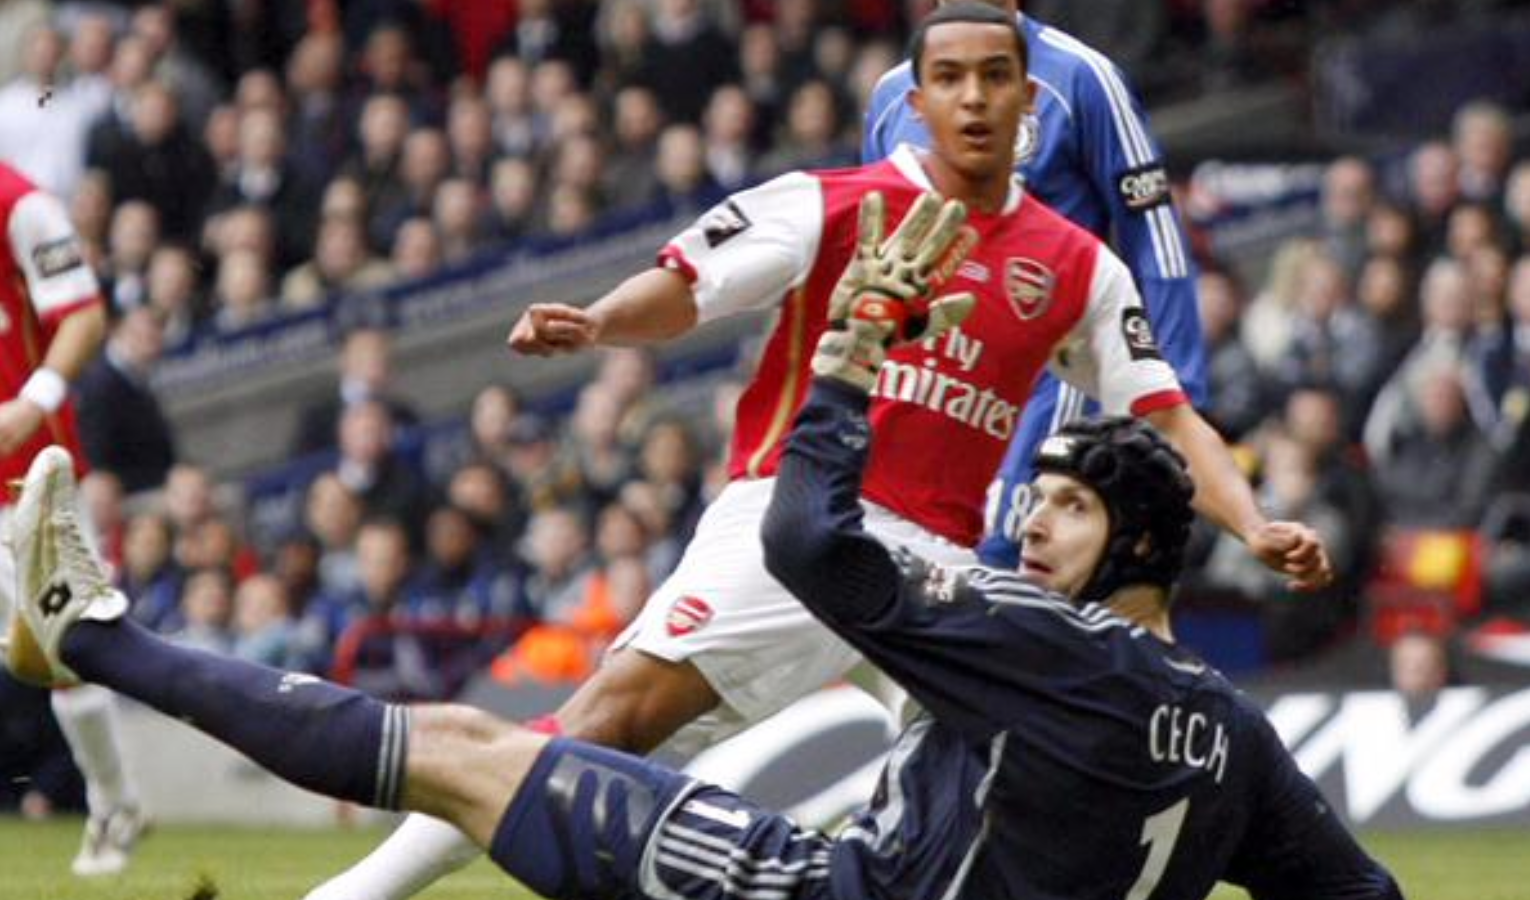 Theo first goal